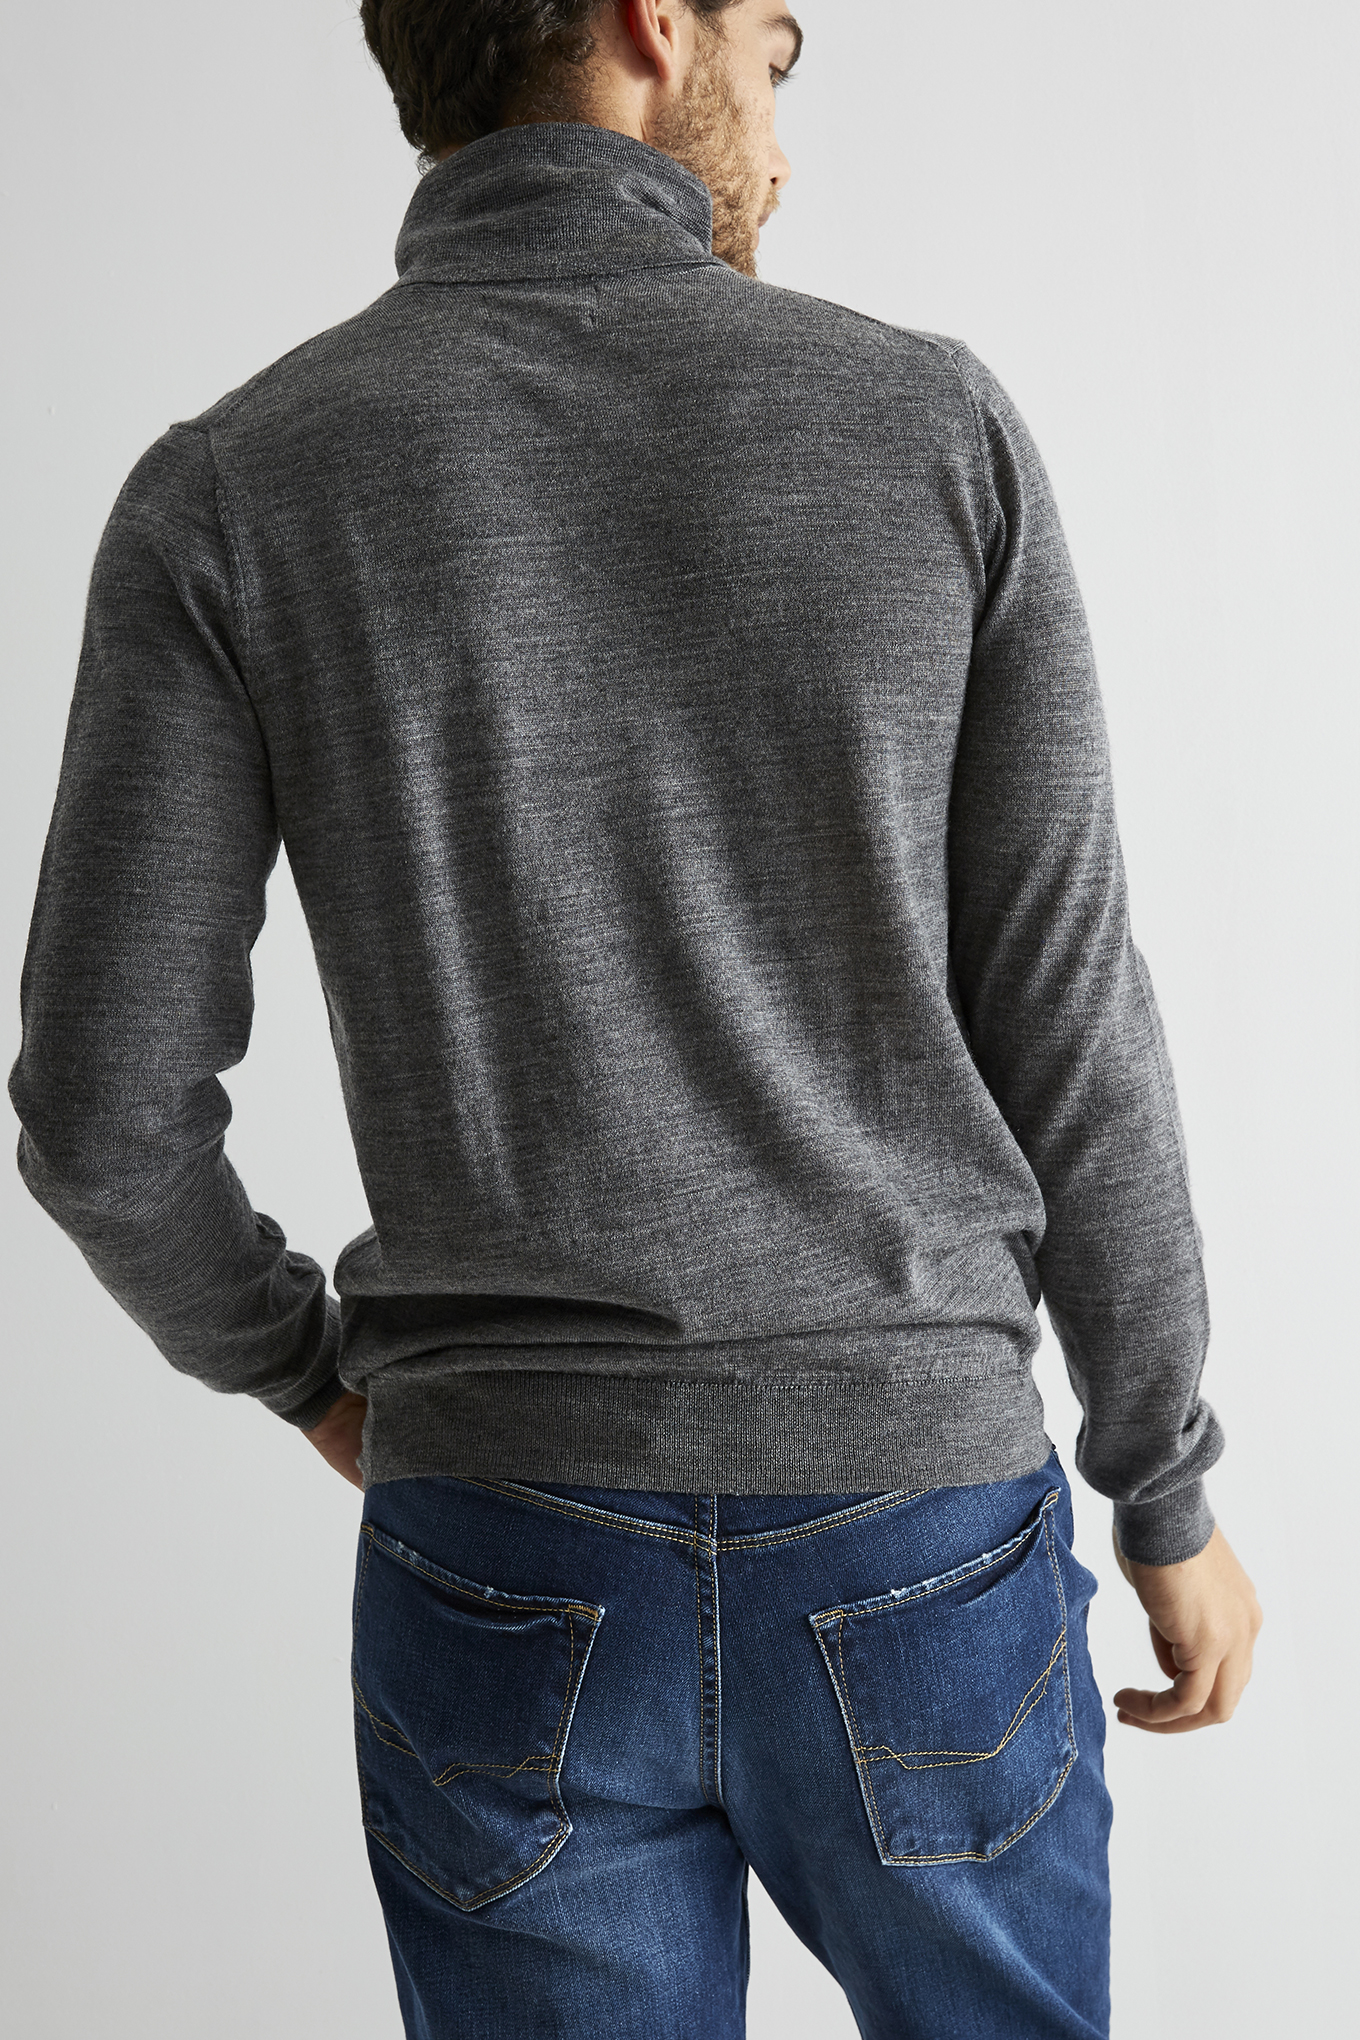 Sweater Dark Grey Casual Man